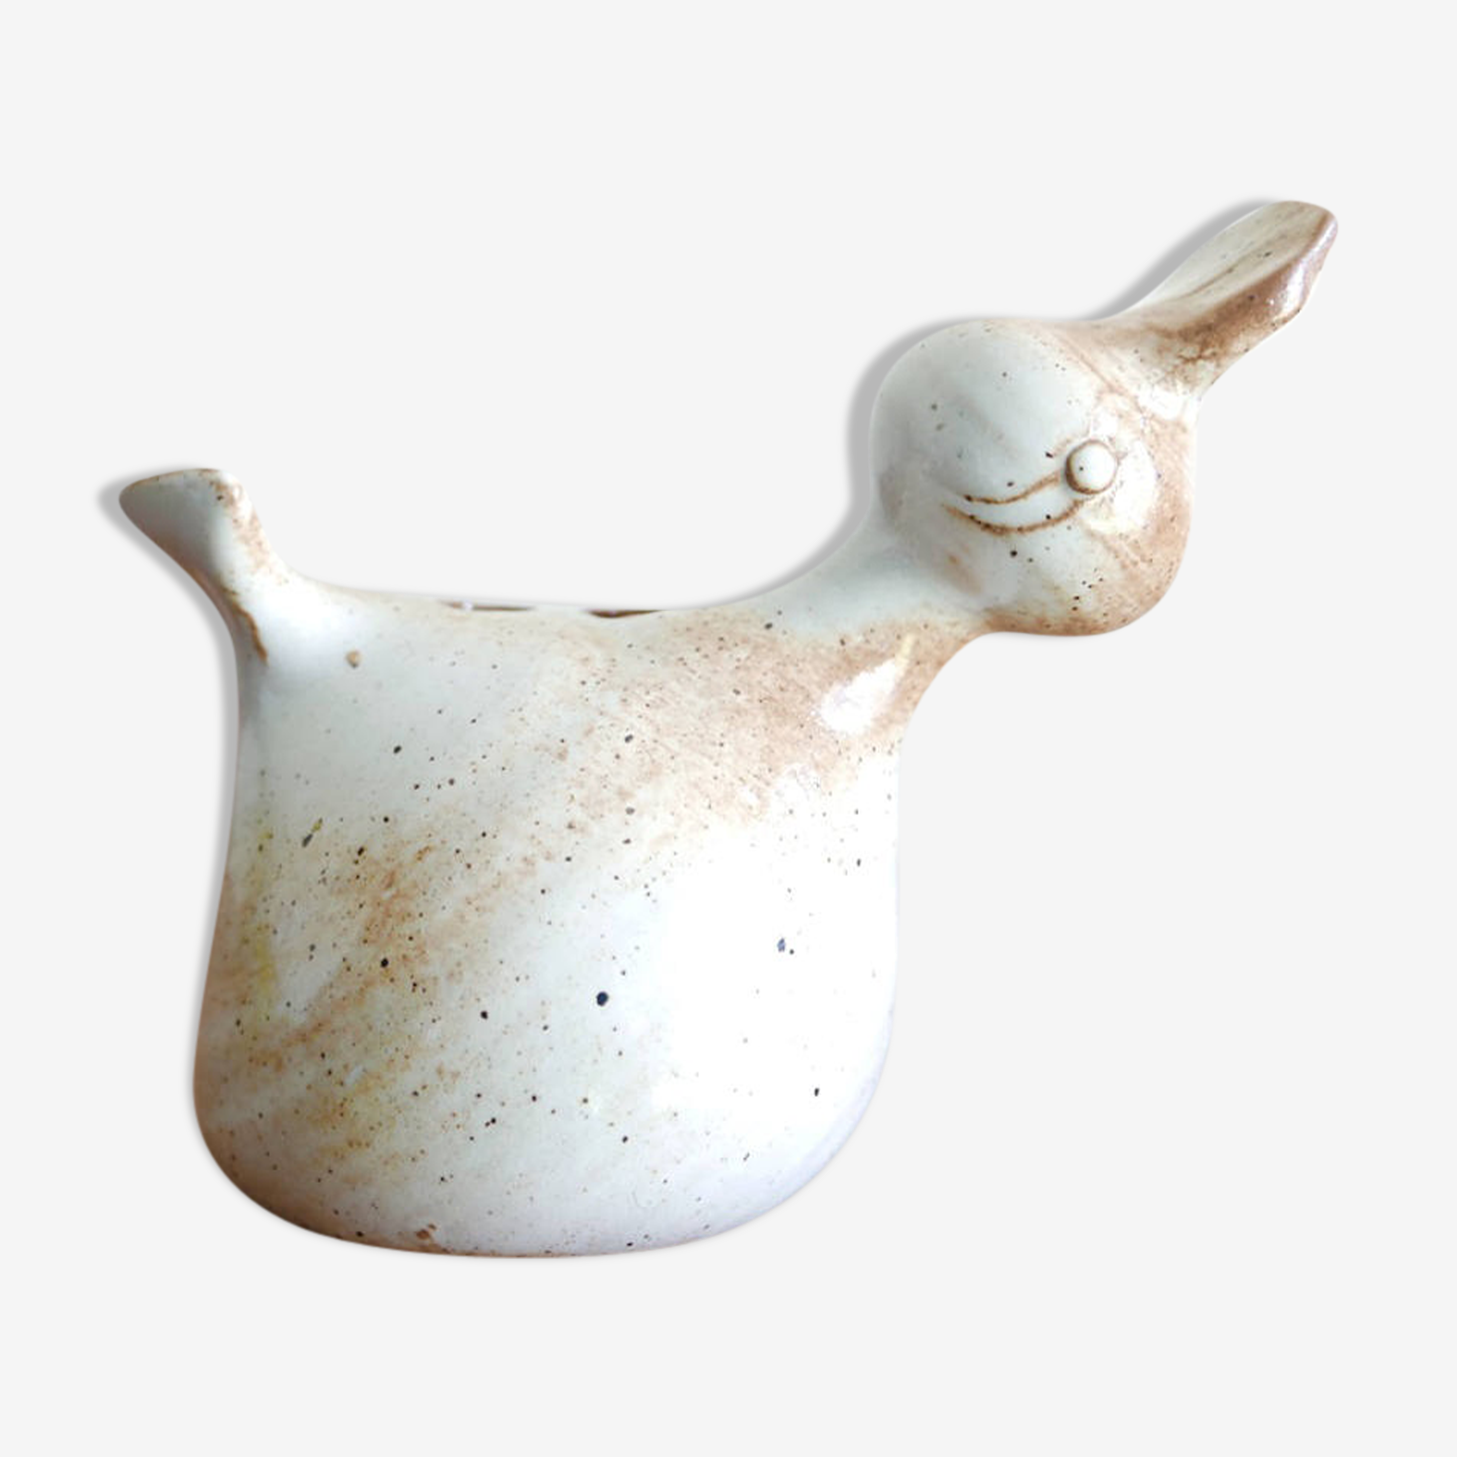 Pique flowers bird in sandstone of the pottery of the Marais, 50 years